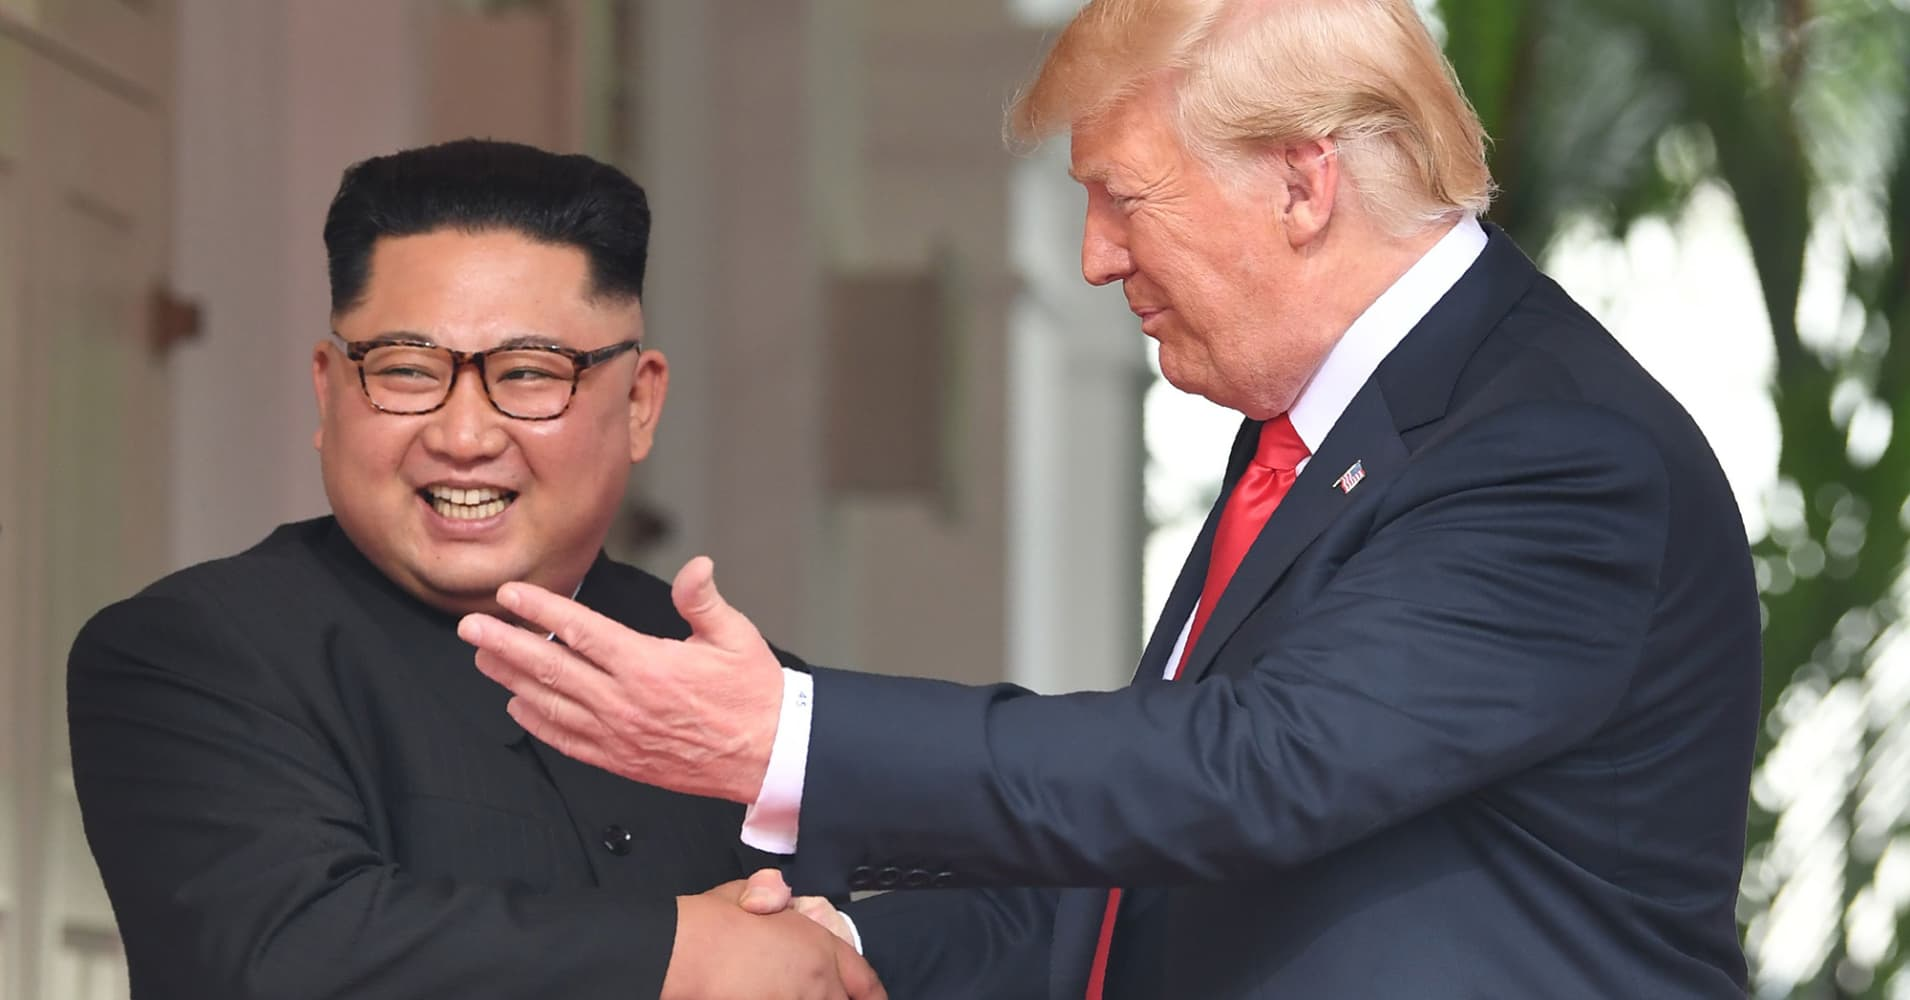 Kim Jong Un: I'll try to make another Trump summit achieve a result 'welcomed' by other countries